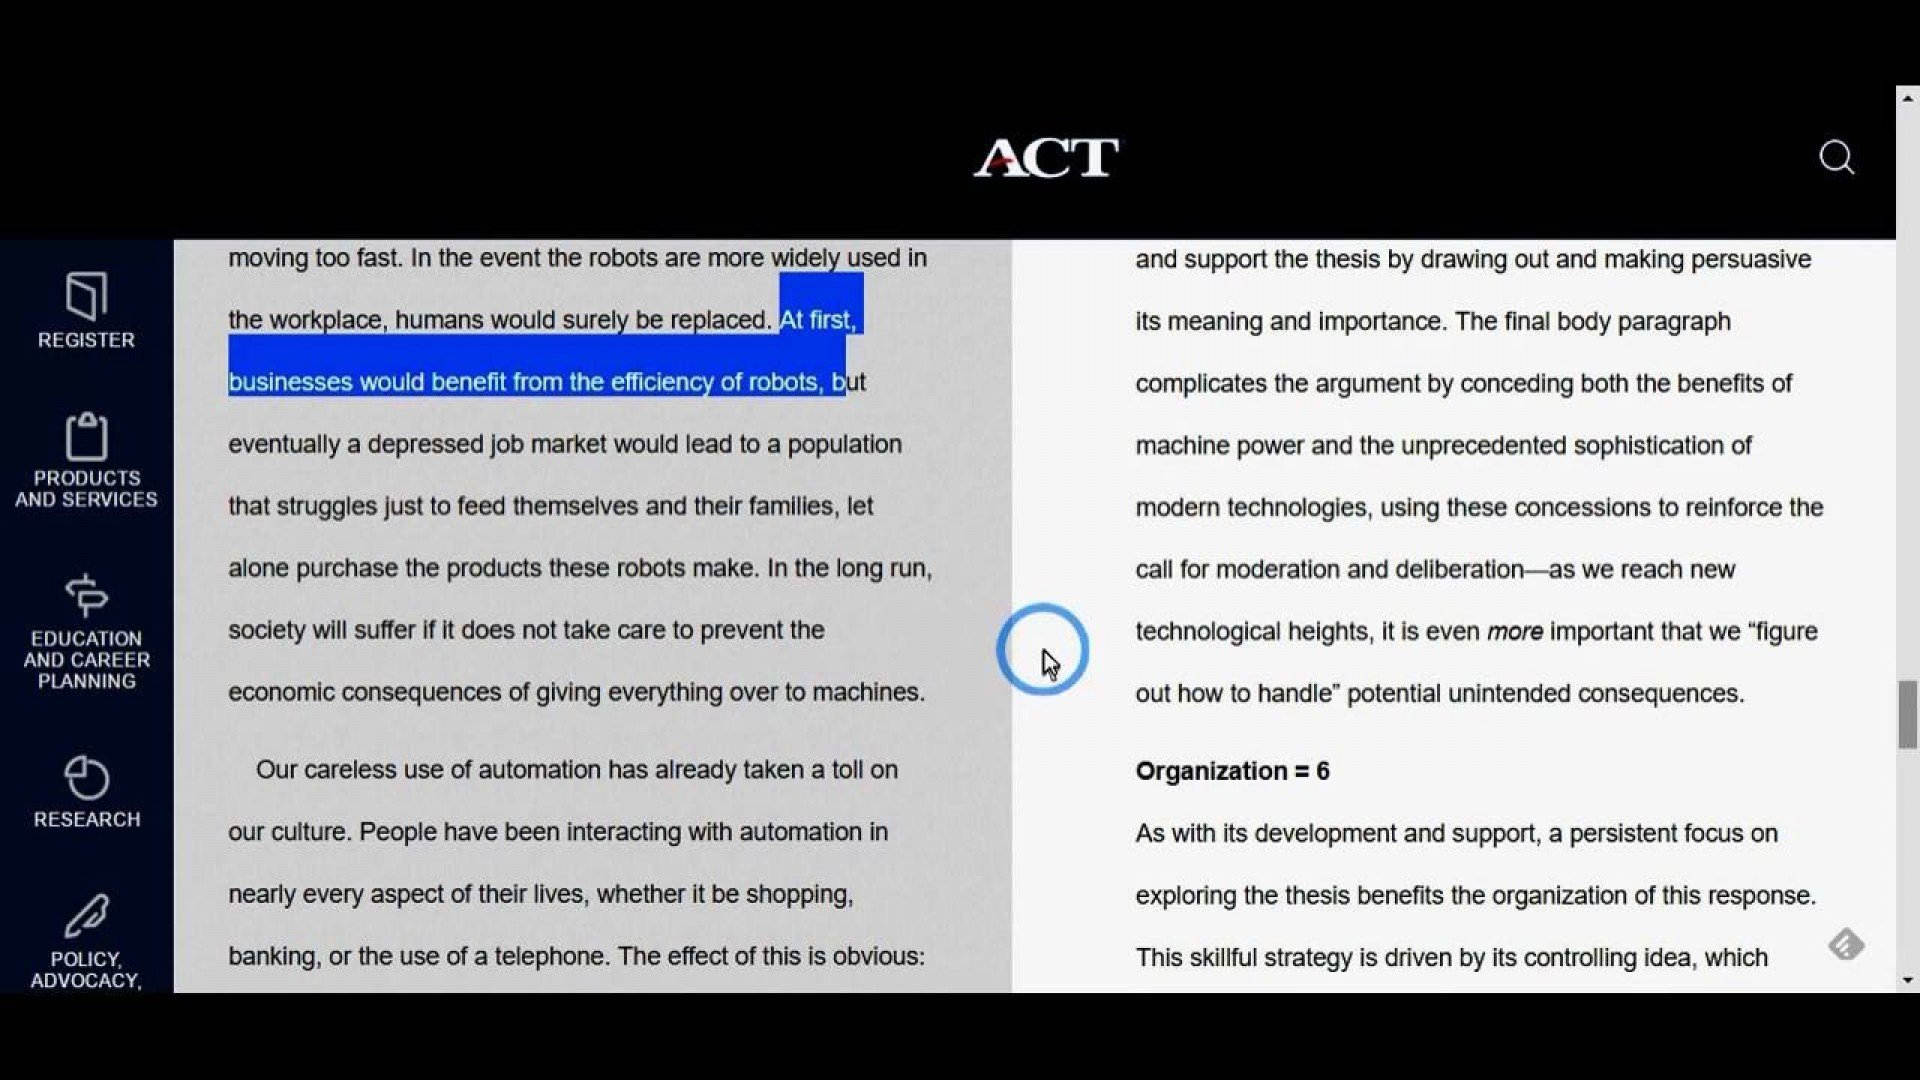 014 How To Write Act Essay Example Wonderful And Scene Number In A New Killer Pdf 1920